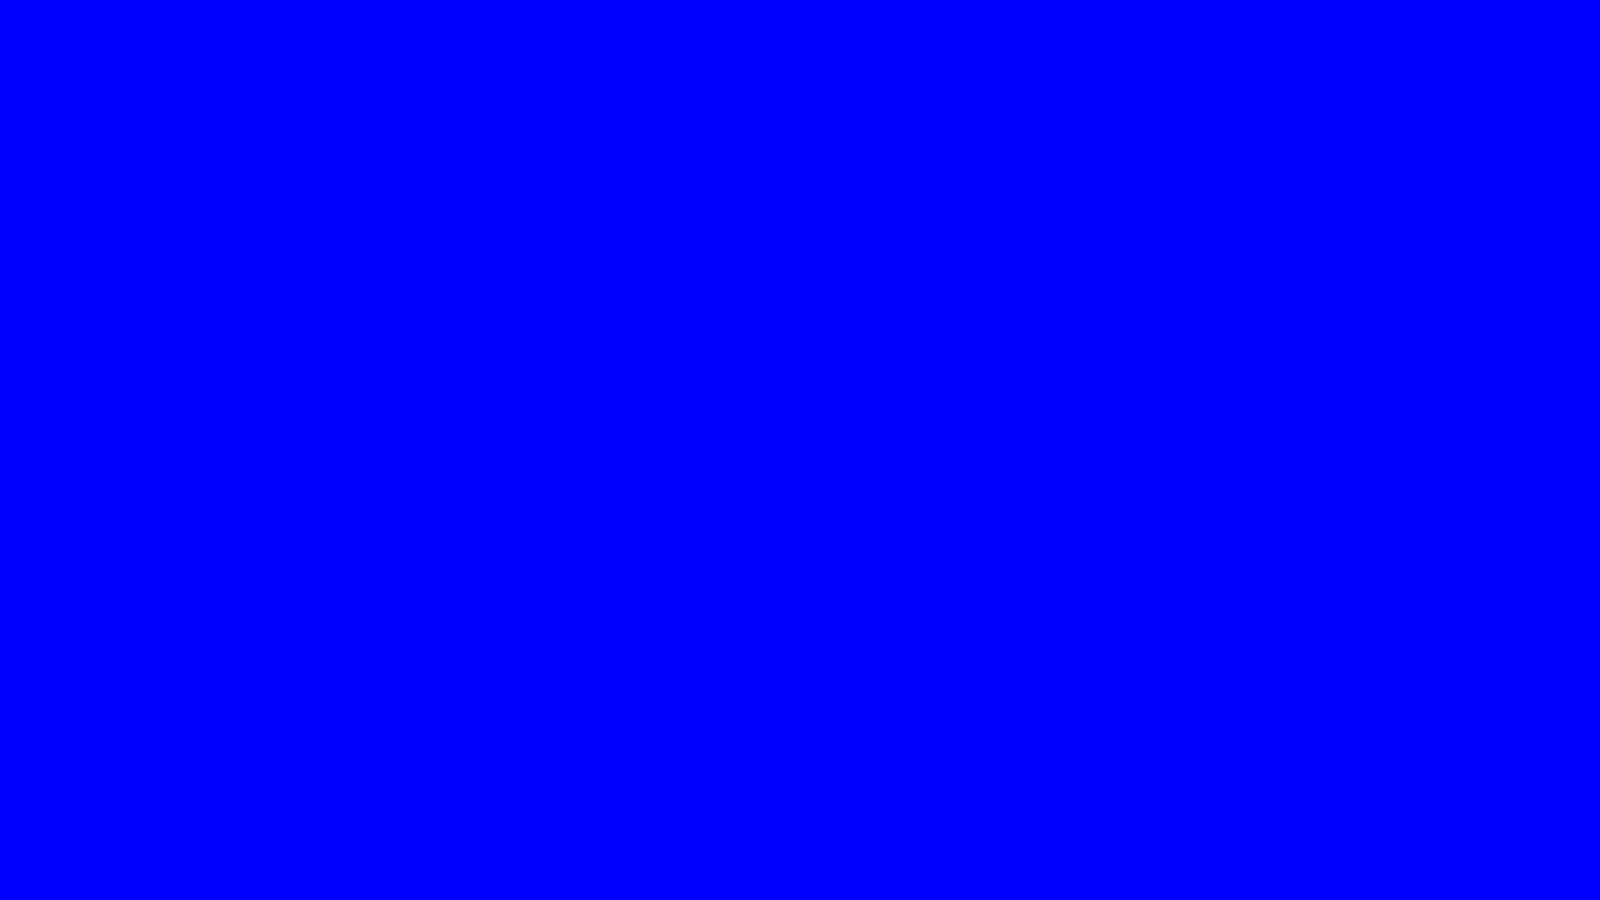 1600x900 Blue Solid Color Background